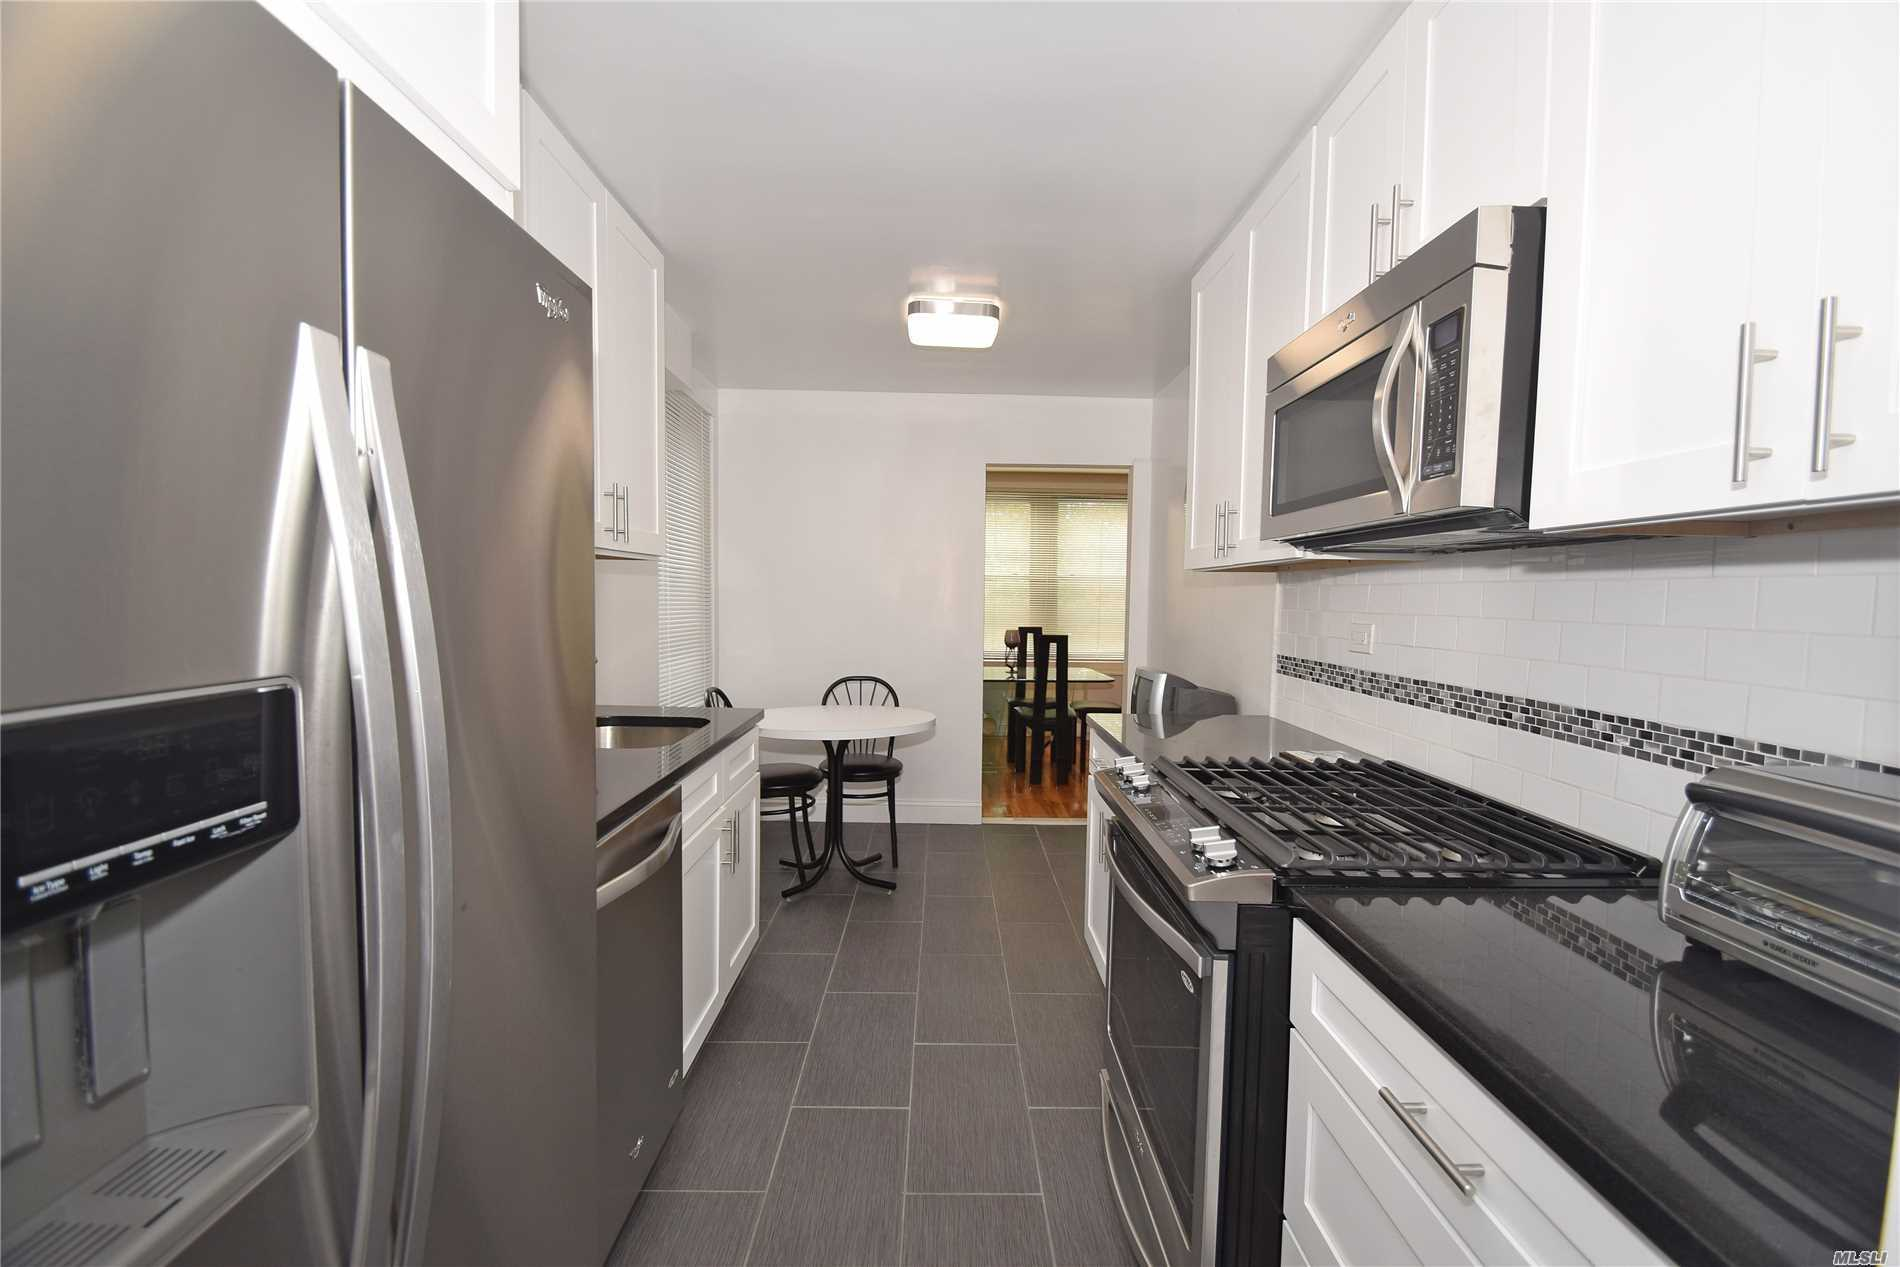 Bright Western Exposure Highlights This Over-Sized 1250 Square Foot 2 Bedroom Plus 2 Full Newly Renovated Baths And Newly Renovated Gourmet Style Eat In Kitchen. Located In The Heart Of The Beautiful And Convenient Bay Terrace Community. The Apartment Has Been Recently Renovated With To Many Features To List. Highlights Include Beautiful Gleaming Hardwood Floors Throughoutp Plus Central Air/Heat Closets Galore And Reserved Parking. Minutes To The Lirr And Express Bus Right Outside Your Door.